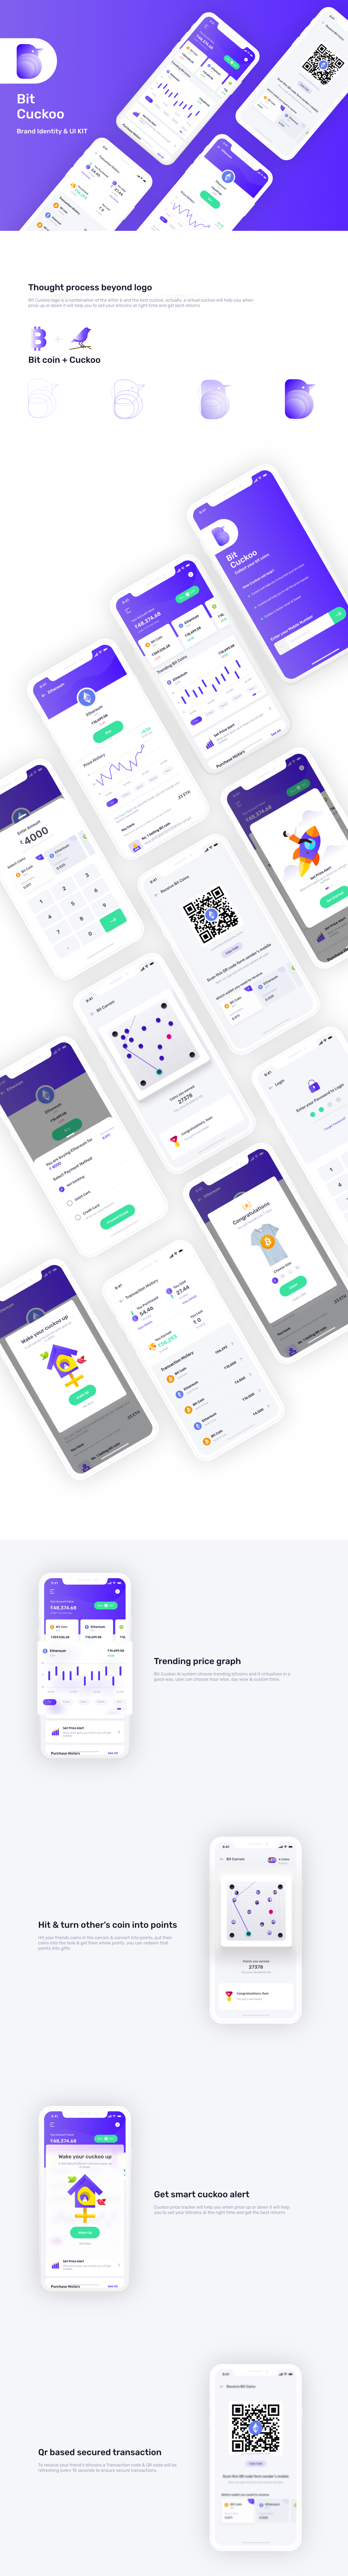 Bit Cuckoo - Bitcoin UI Kit for Adobe XD - Minimal and clean app design by Ramky.